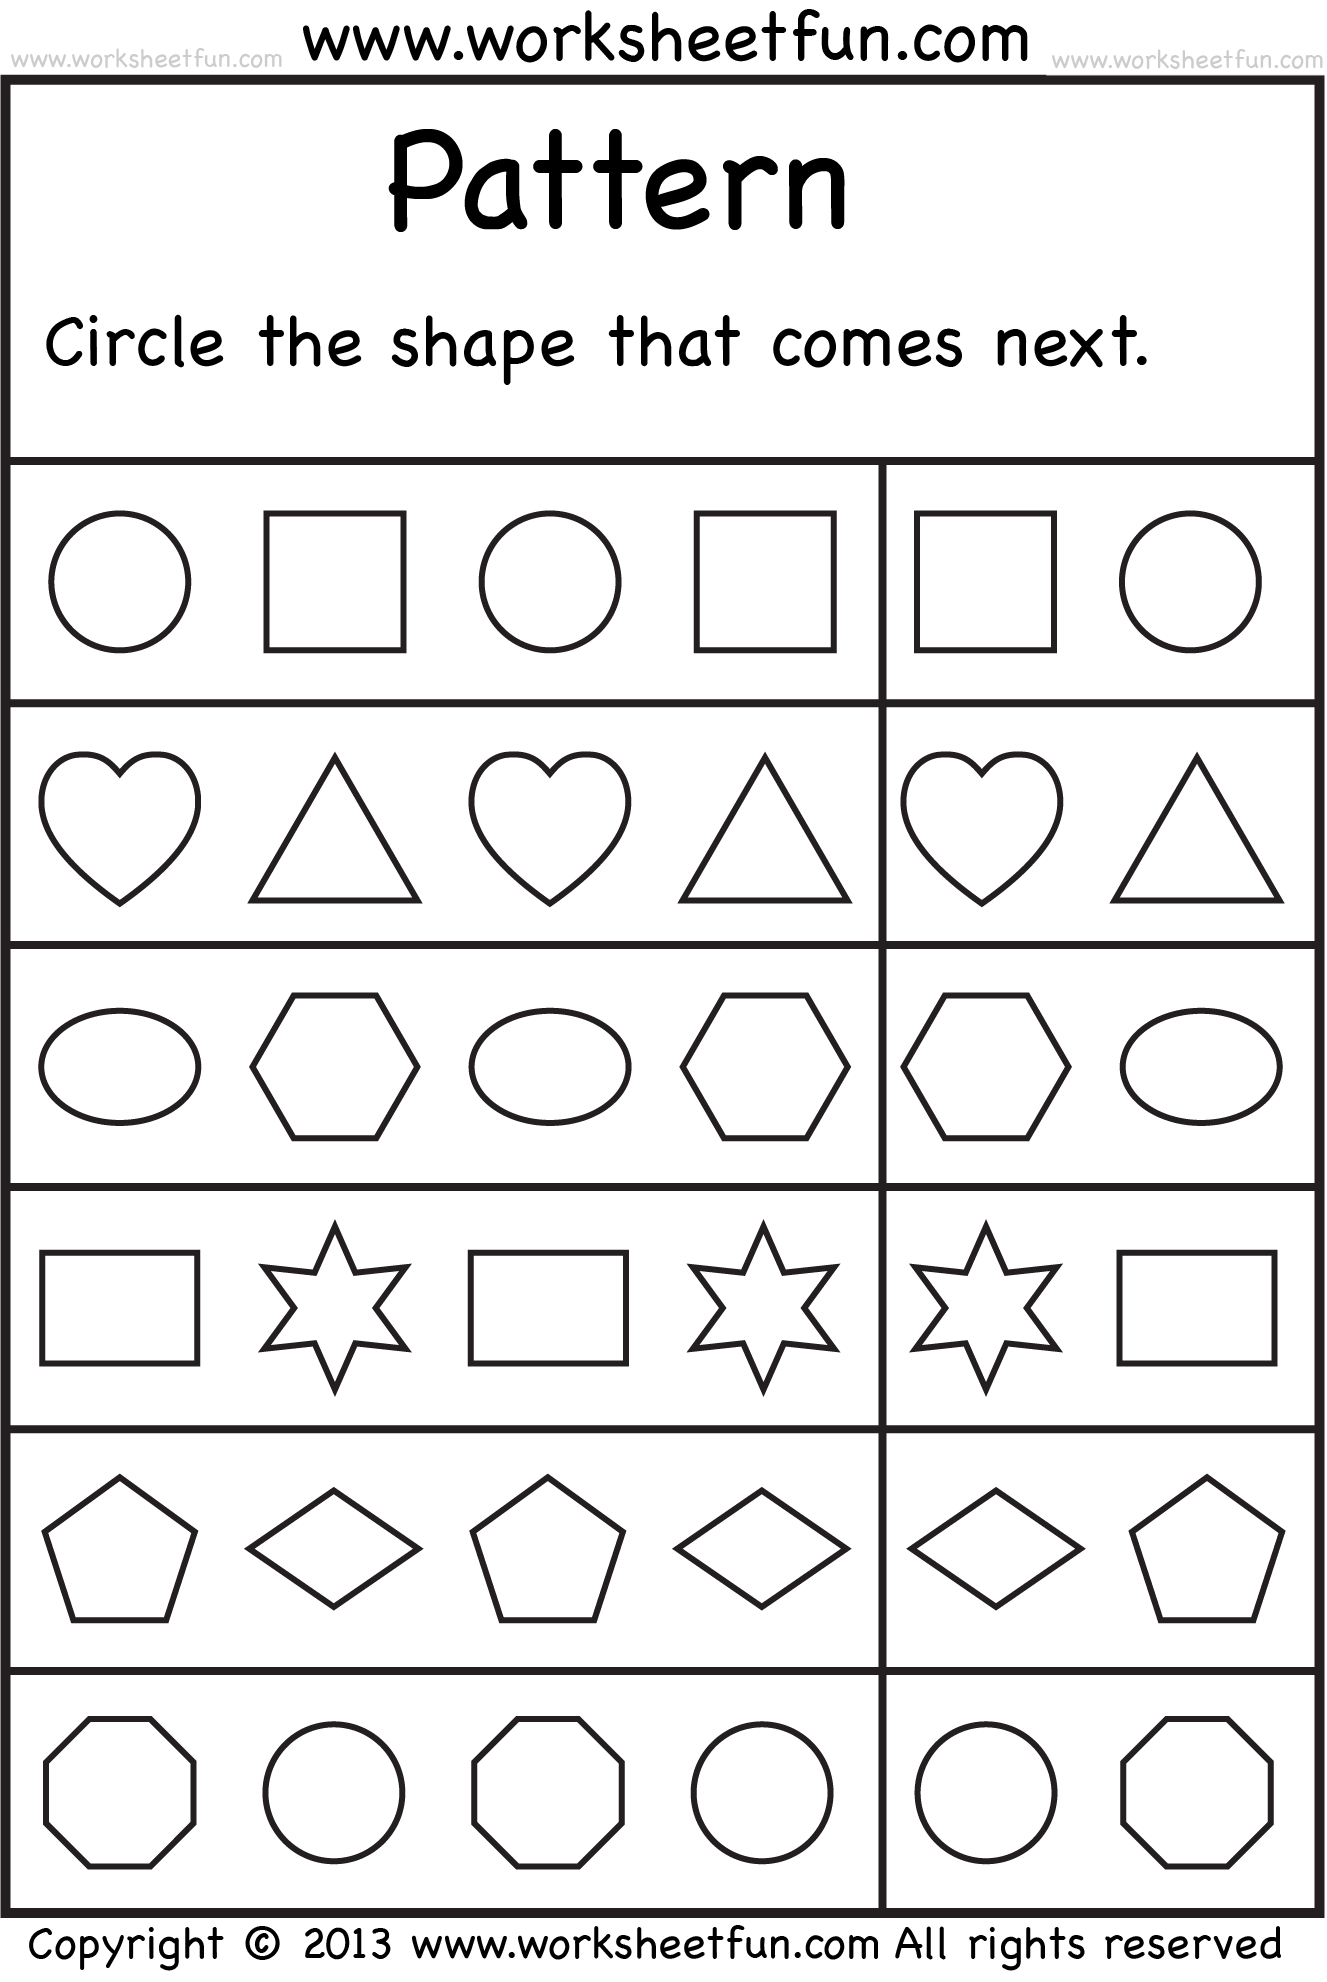 Weirdmailus  Wonderful  Images About School Worksheets On Pinterest  Number Words  With Remarkable  Images About School Worksheets On Pinterest  Number Words Alphabet Worksheets And Free Printable Kindergarten Worksheets With Divine Rd Grade Common Core Math Worksheets Also Single Digit Addition Worksheets In Addition Matching Worksheet And Constant Velocity Model Worksheet  As Well As Ionic And Covalent Bonding Worksheet Answers Additionally Net Ionic Equations Worksheet Answers From Pinterestcom With Weirdmailus  Remarkable  Images About School Worksheets On Pinterest  Number Words  With Divine  Images About School Worksheets On Pinterest  Number Words Alphabet Worksheets And Free Printable Kindergarten Worksheets And Wonderful Rd Grade Common Core Math Worksheets Also Single Digit Addition Worksheets In Addition Matching Worksheet From Pinterestcom